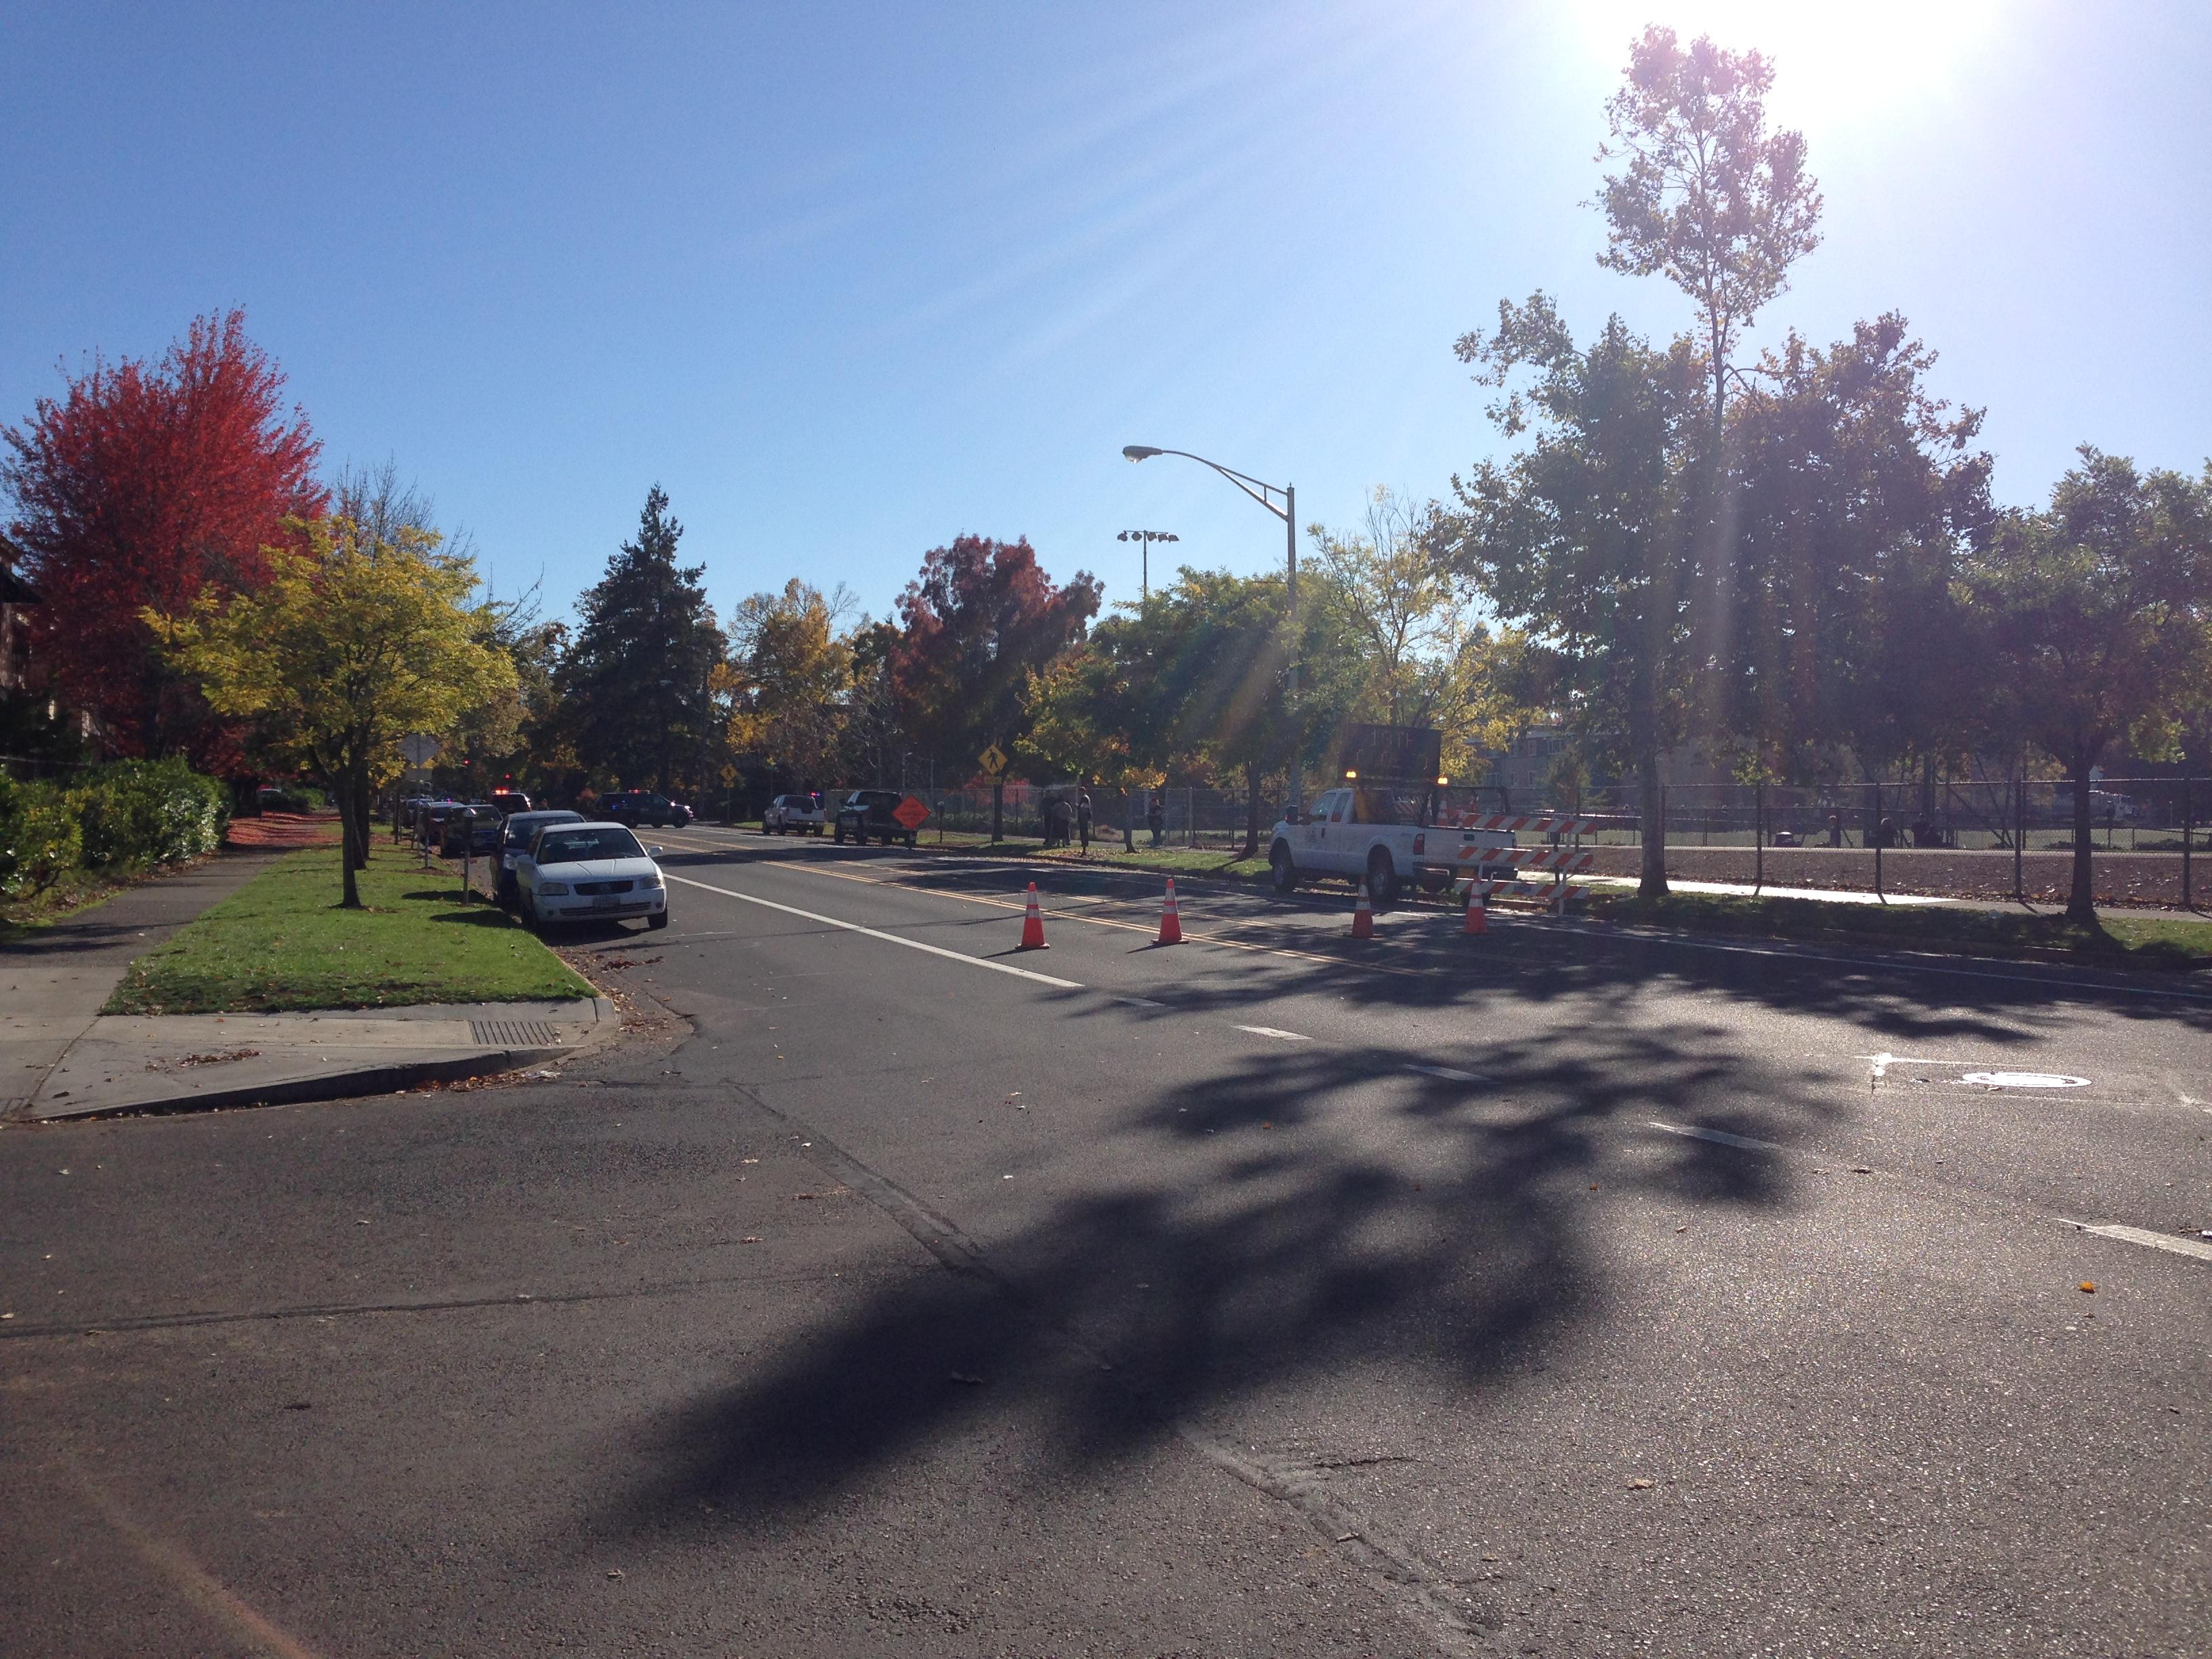 UO Police: Bomb threat at Agate Hall; avoid area 'until further notice'